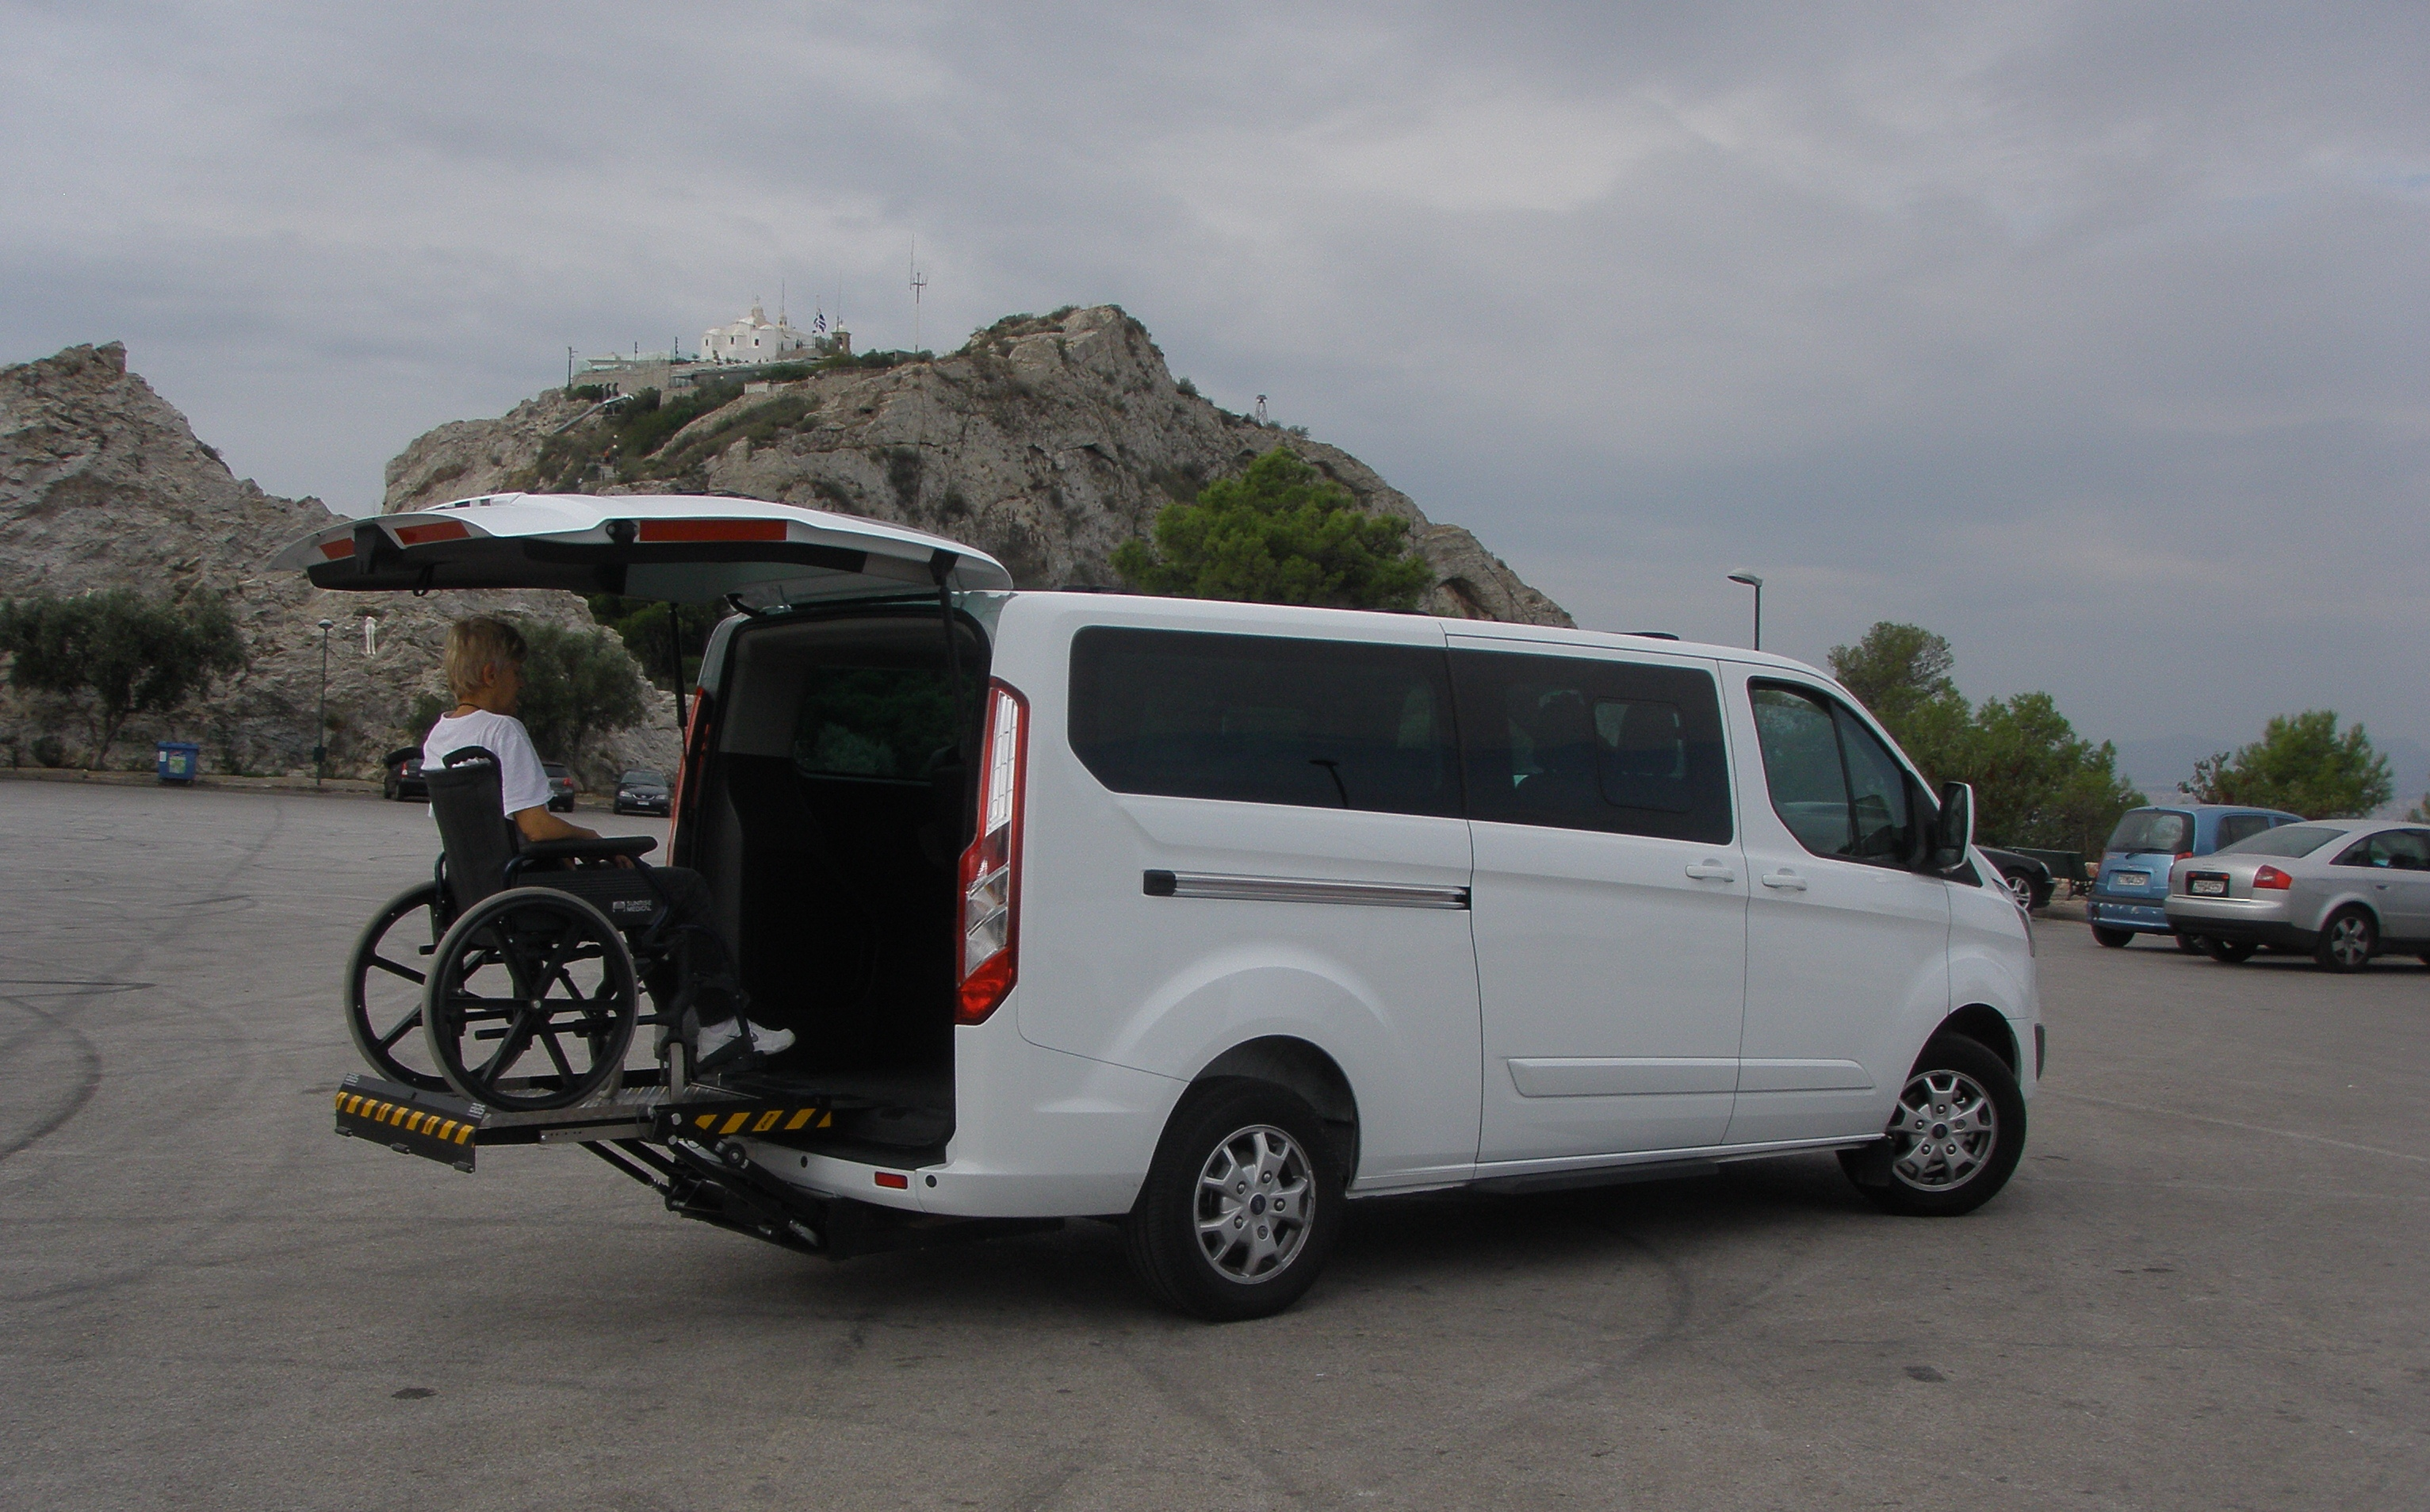 Taxi for all - accessible minivan for disabled persons